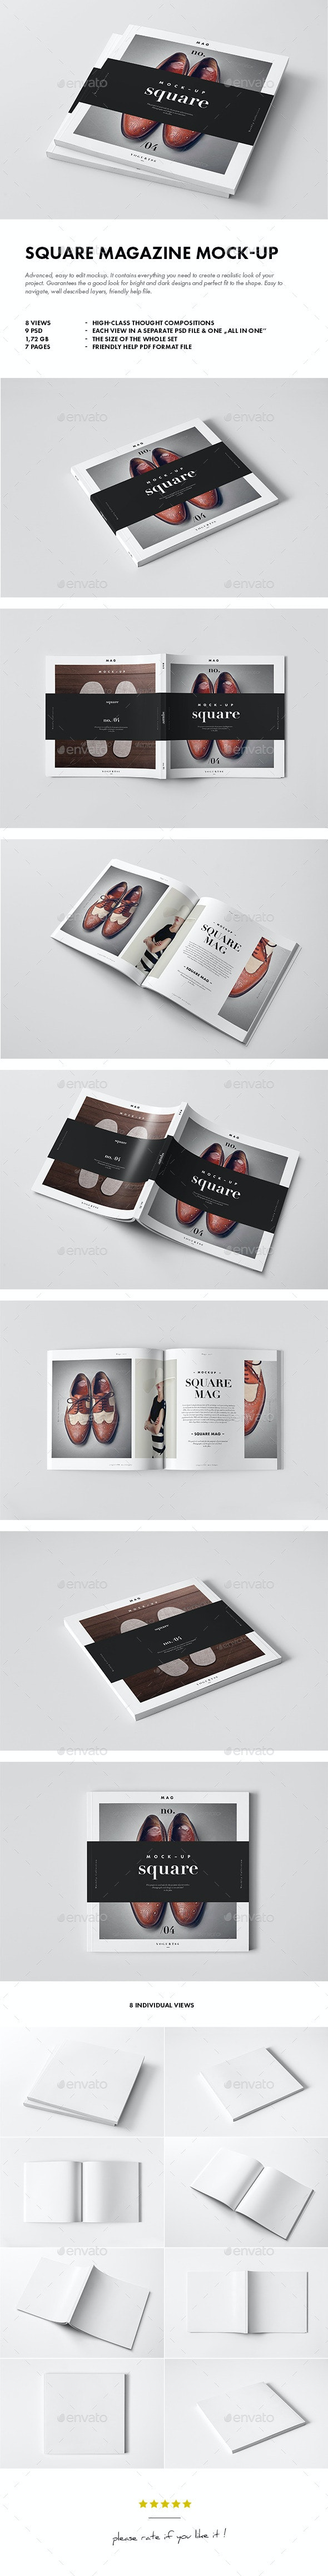 Square Magazine / Brochure Mock-up - Magazines Print